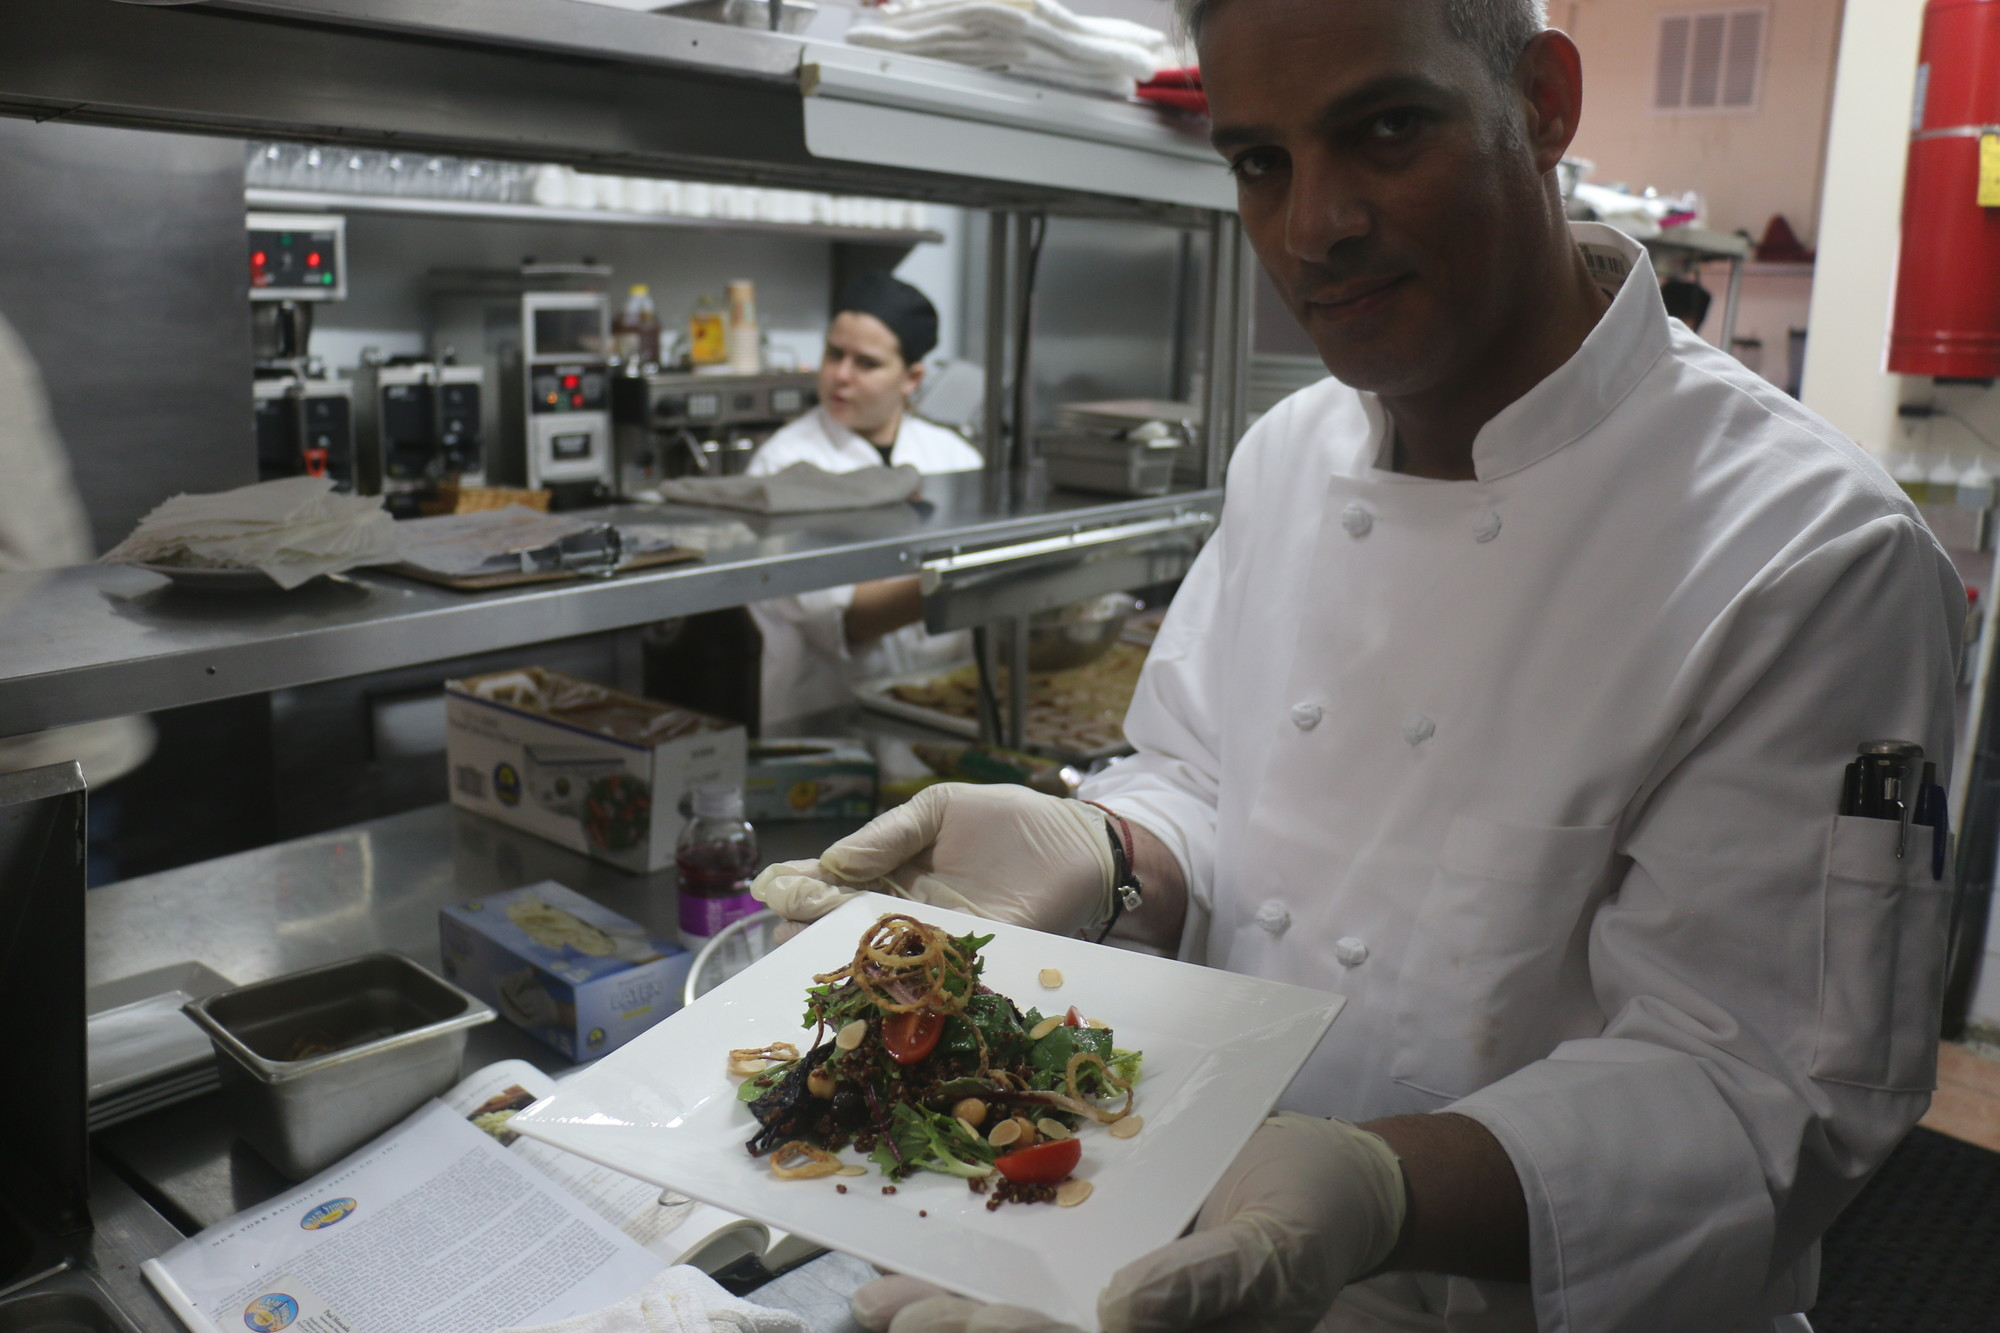 Owner Raed Jallad displayed a salad he topped with fried shallots and almonds roasted in-house.